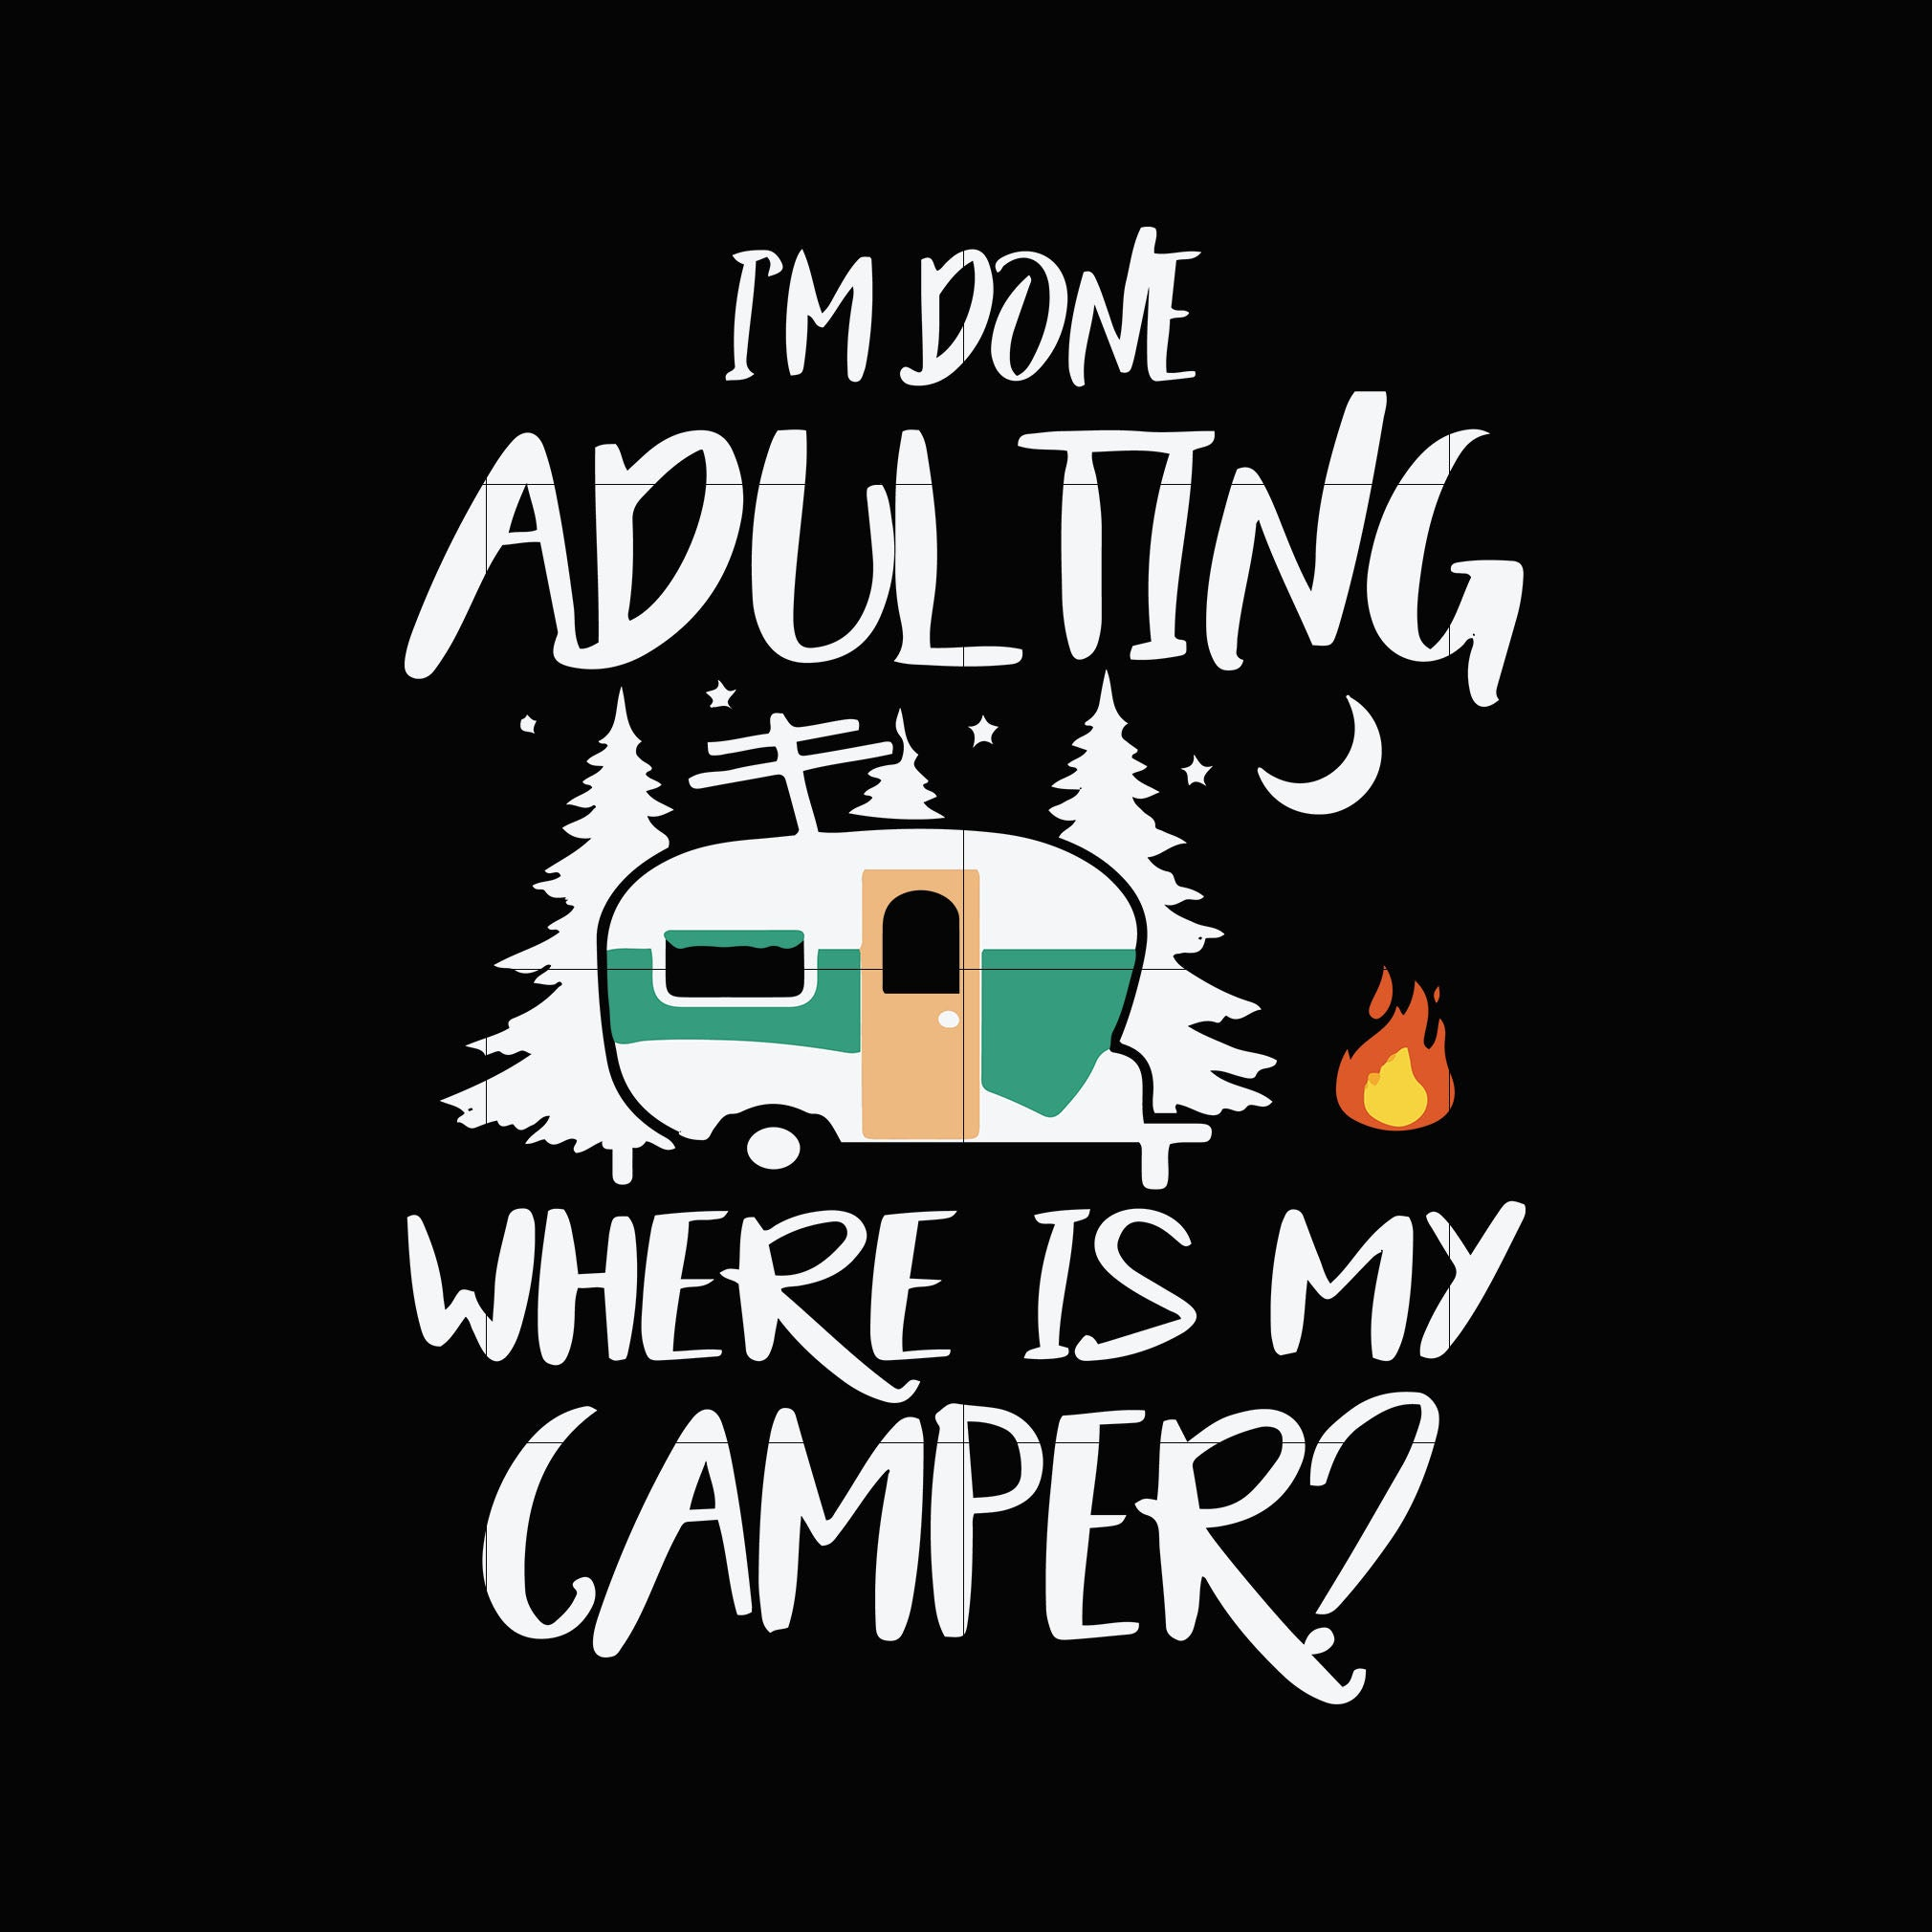 I'm done adulting where is my camper svg,dxf,eps,png digital file